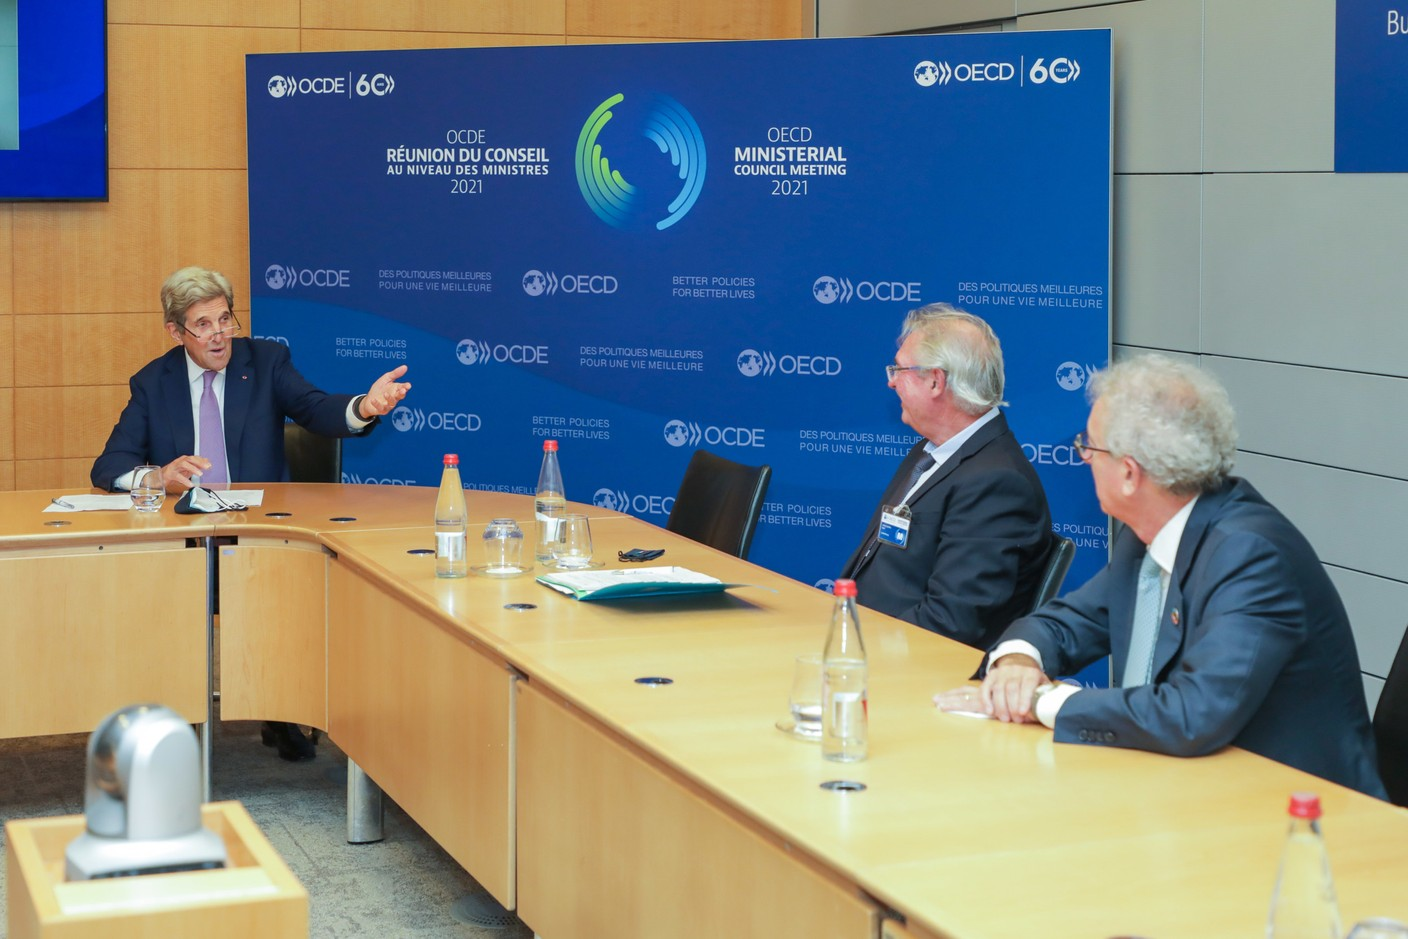 (from left to right) John Kerry, Special Envoy of the President of the United States of America for Climate Change; Jean Asselborn, Minister for Foreign and European Affairs; Pierre Gramegna, Minister for Finance SIP/LUC DEFLORENNE